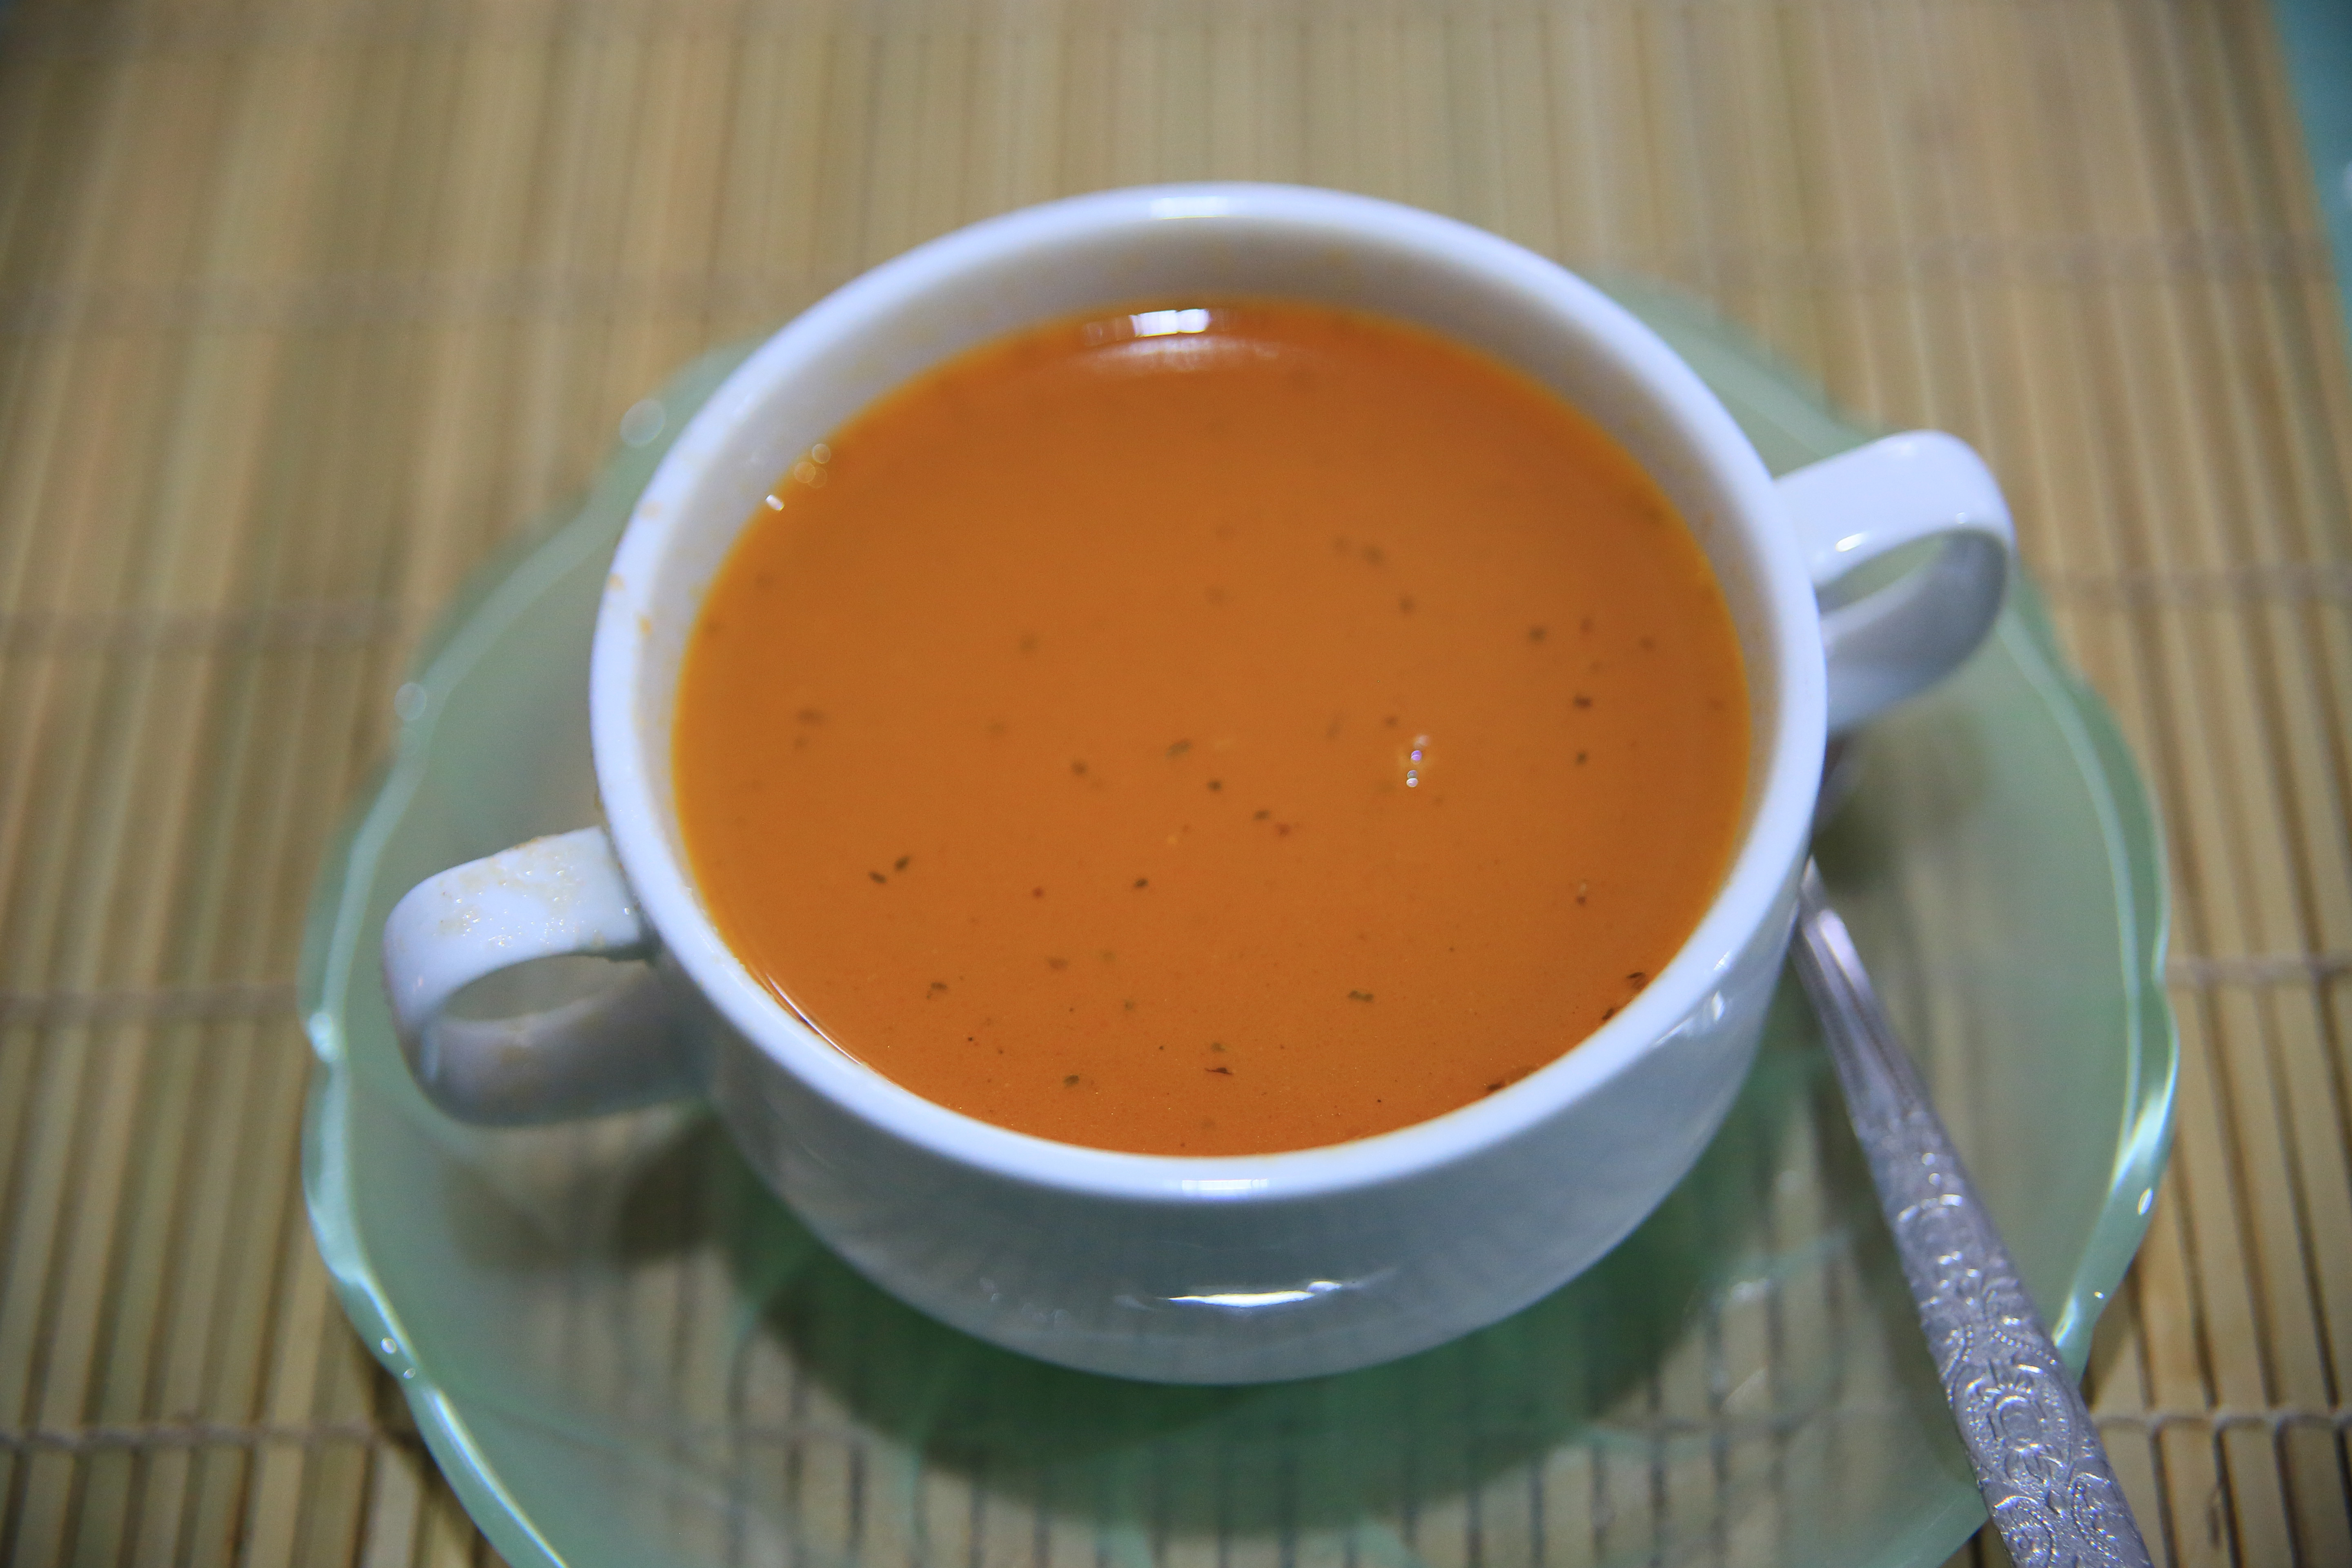 How To Make Tomato Soup  How to Make a Very Simple Tomato Soup 7 Steps with